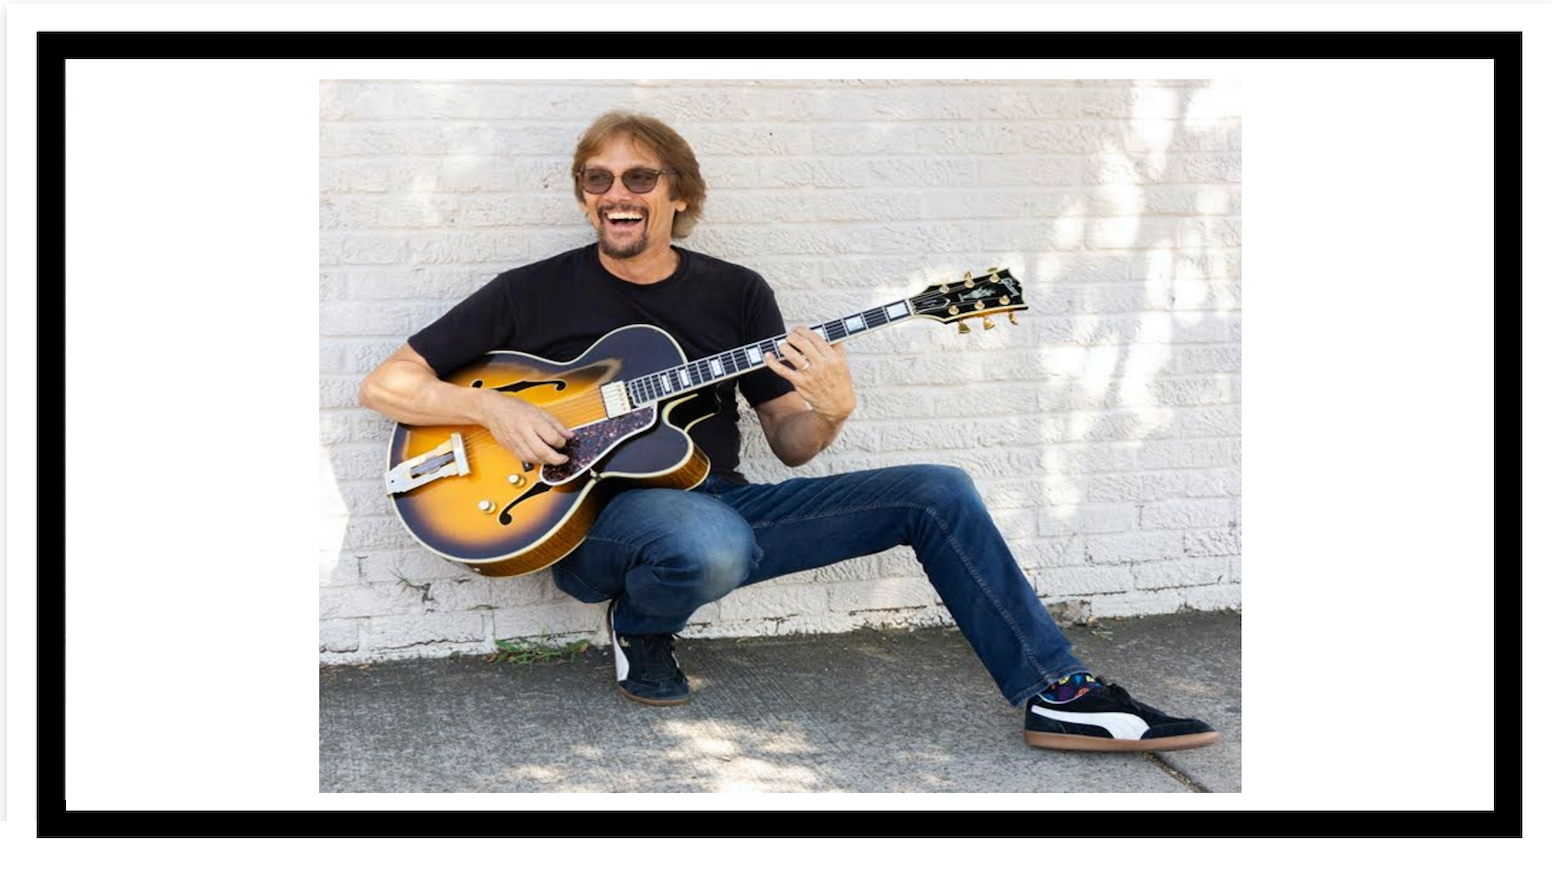 """Guitarist Mike Pachelli's new CD - """"High Standards"""" - featuring Danny Gottlieb on drums and Tony Levin on bass!"""